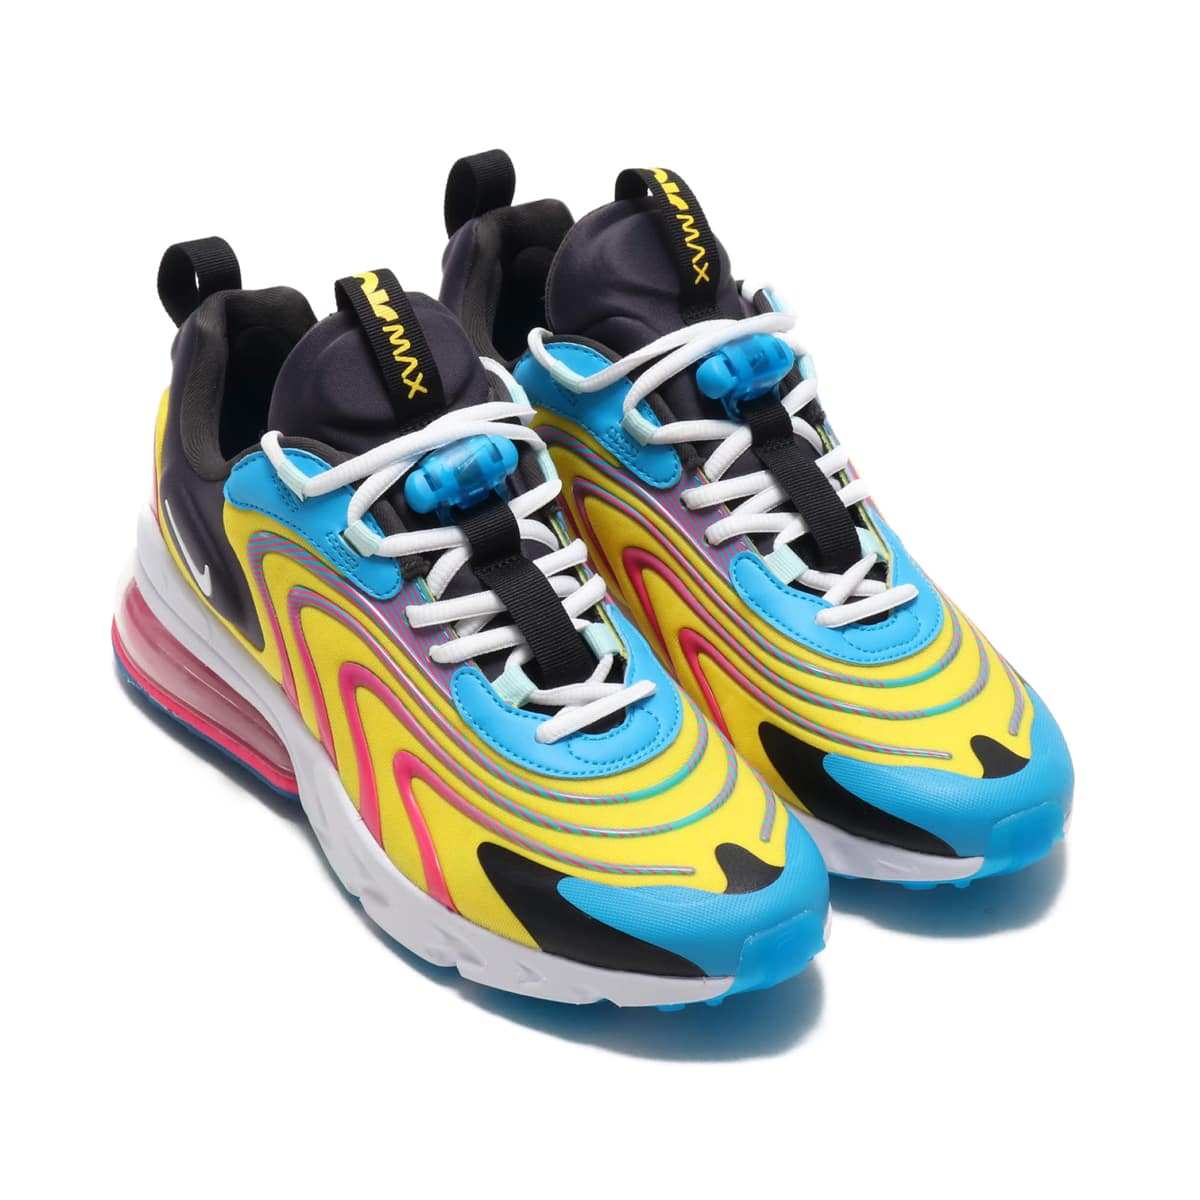 NIKE AIR MAX 270 REACT ENG LASER BLUE/WHITE-ANTHRACITE-WATERMELON 20SP-S_photo_large